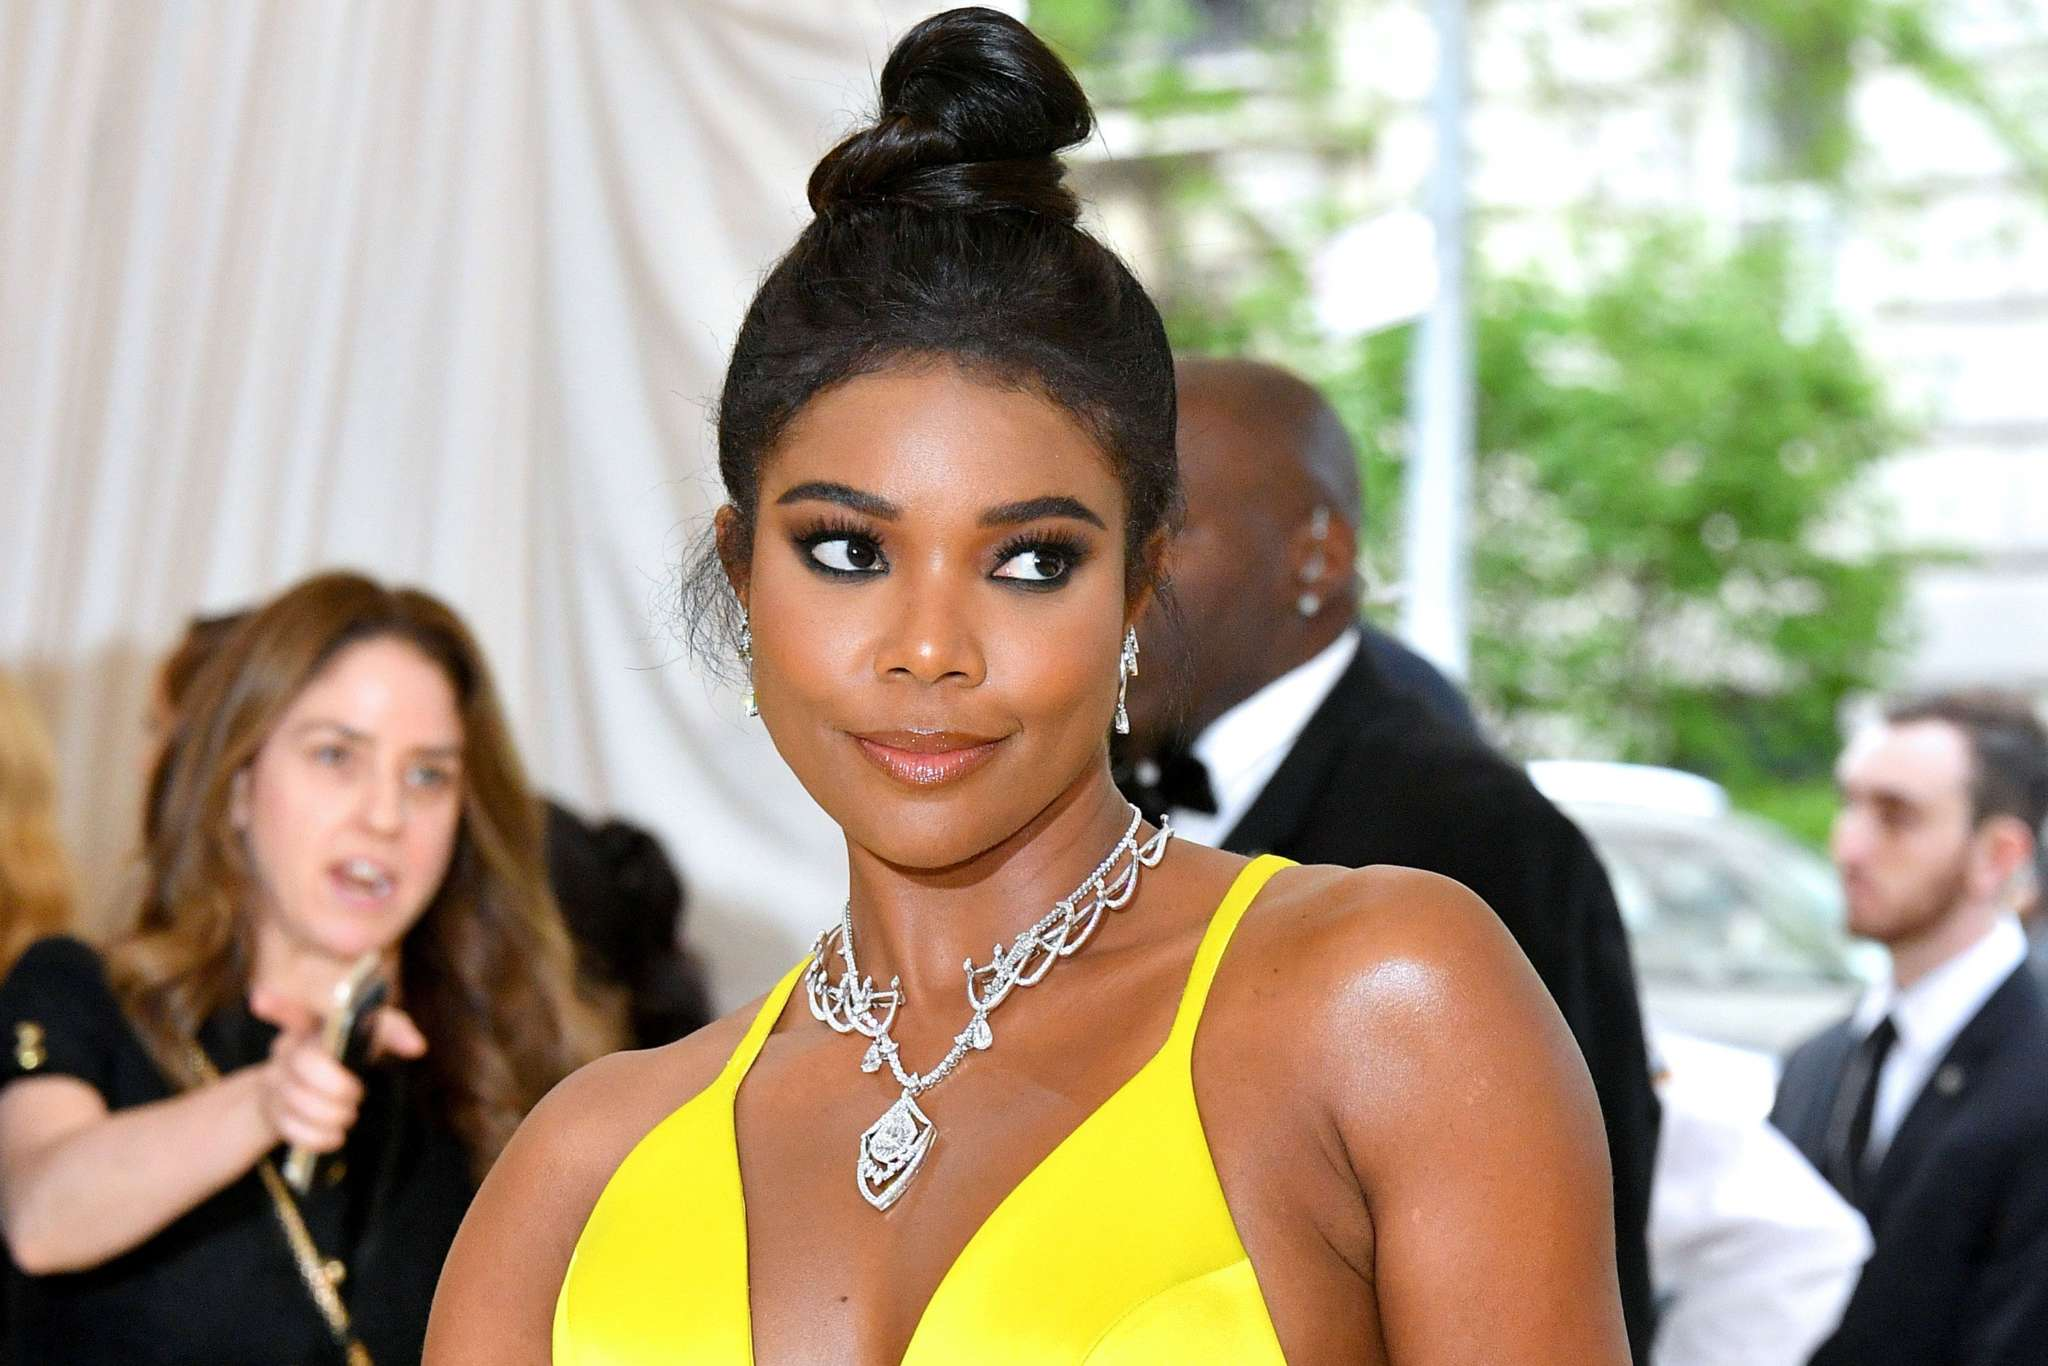 Gabrielle Union's Latest Photo Of Baby Kaavia Has Fans Smiling – The Mom Sends A Strong Message photo